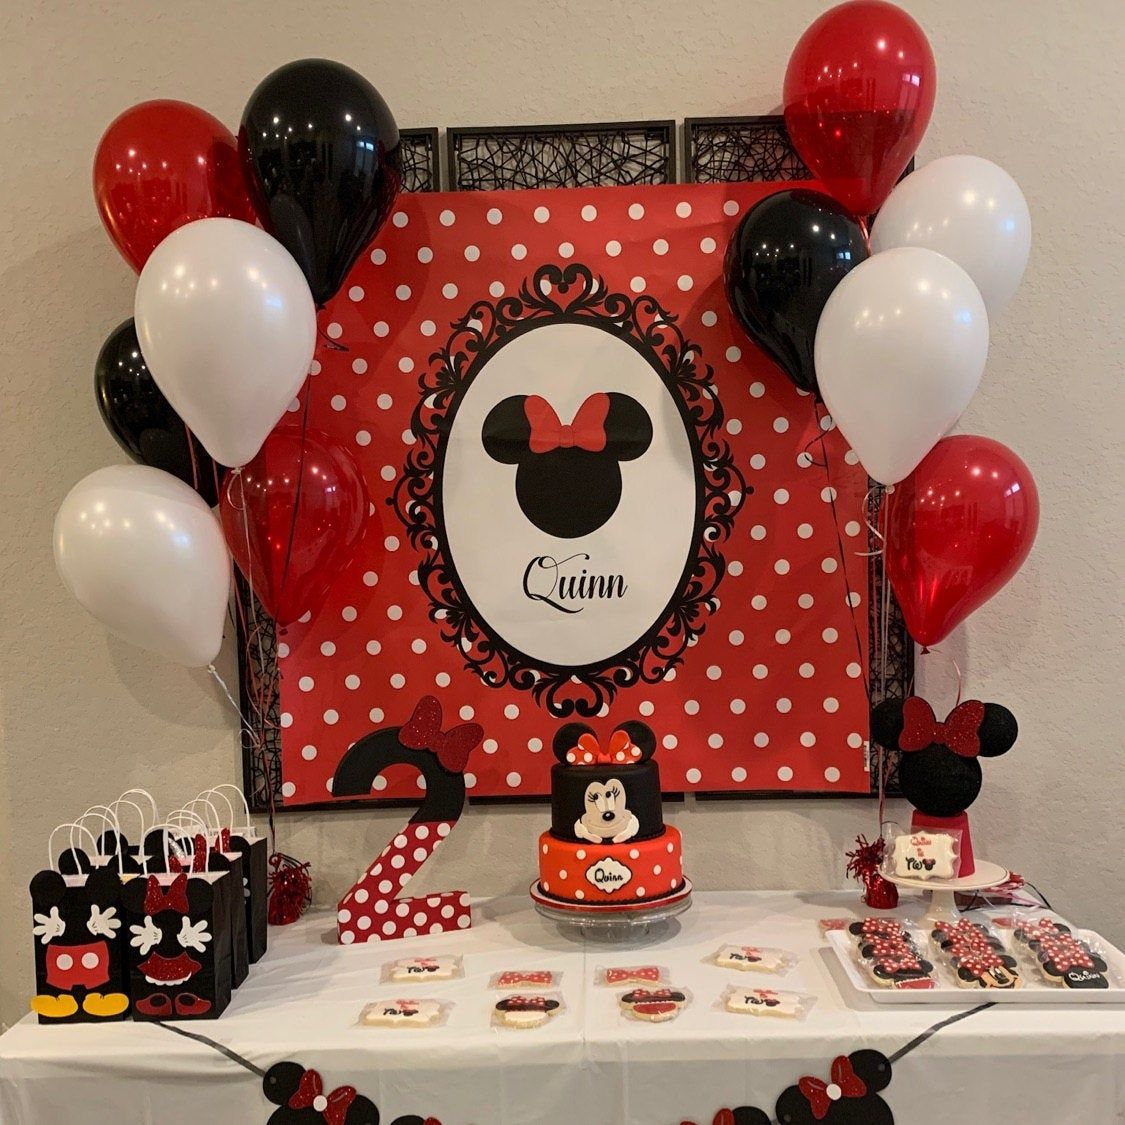 Minnie Mouse Inspired Personalized Birthday Party Backdrop Etsy Minnie Mouse Birthday Decorations Minnie Mouse Birthday Party Decorations Mini Mouse Birthday Party Ideas